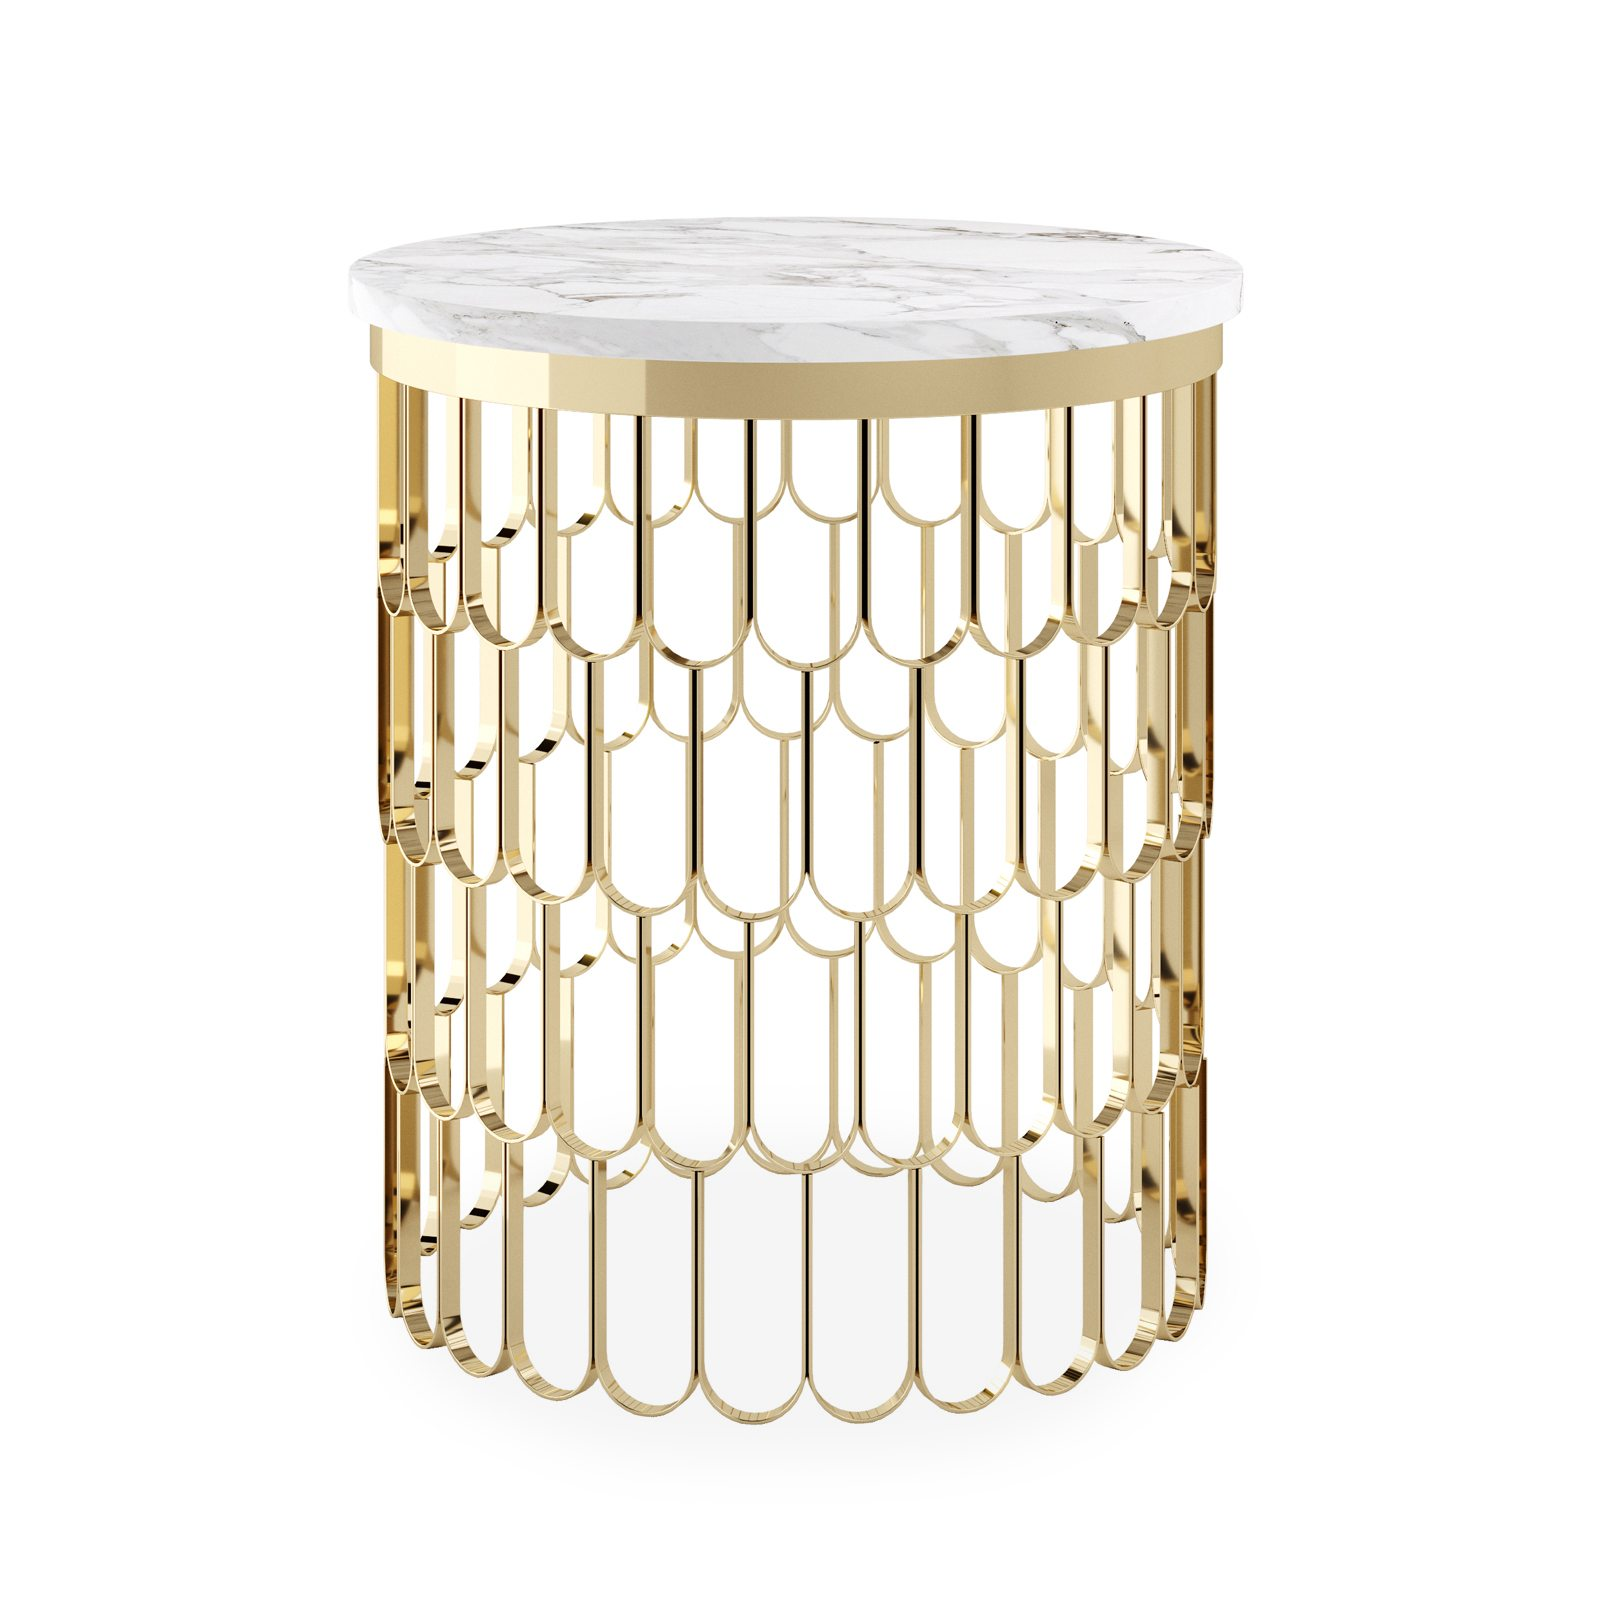 Feather-Side-Table-Gold-&-White-Marble-by-Bonham-&-Bonham-01